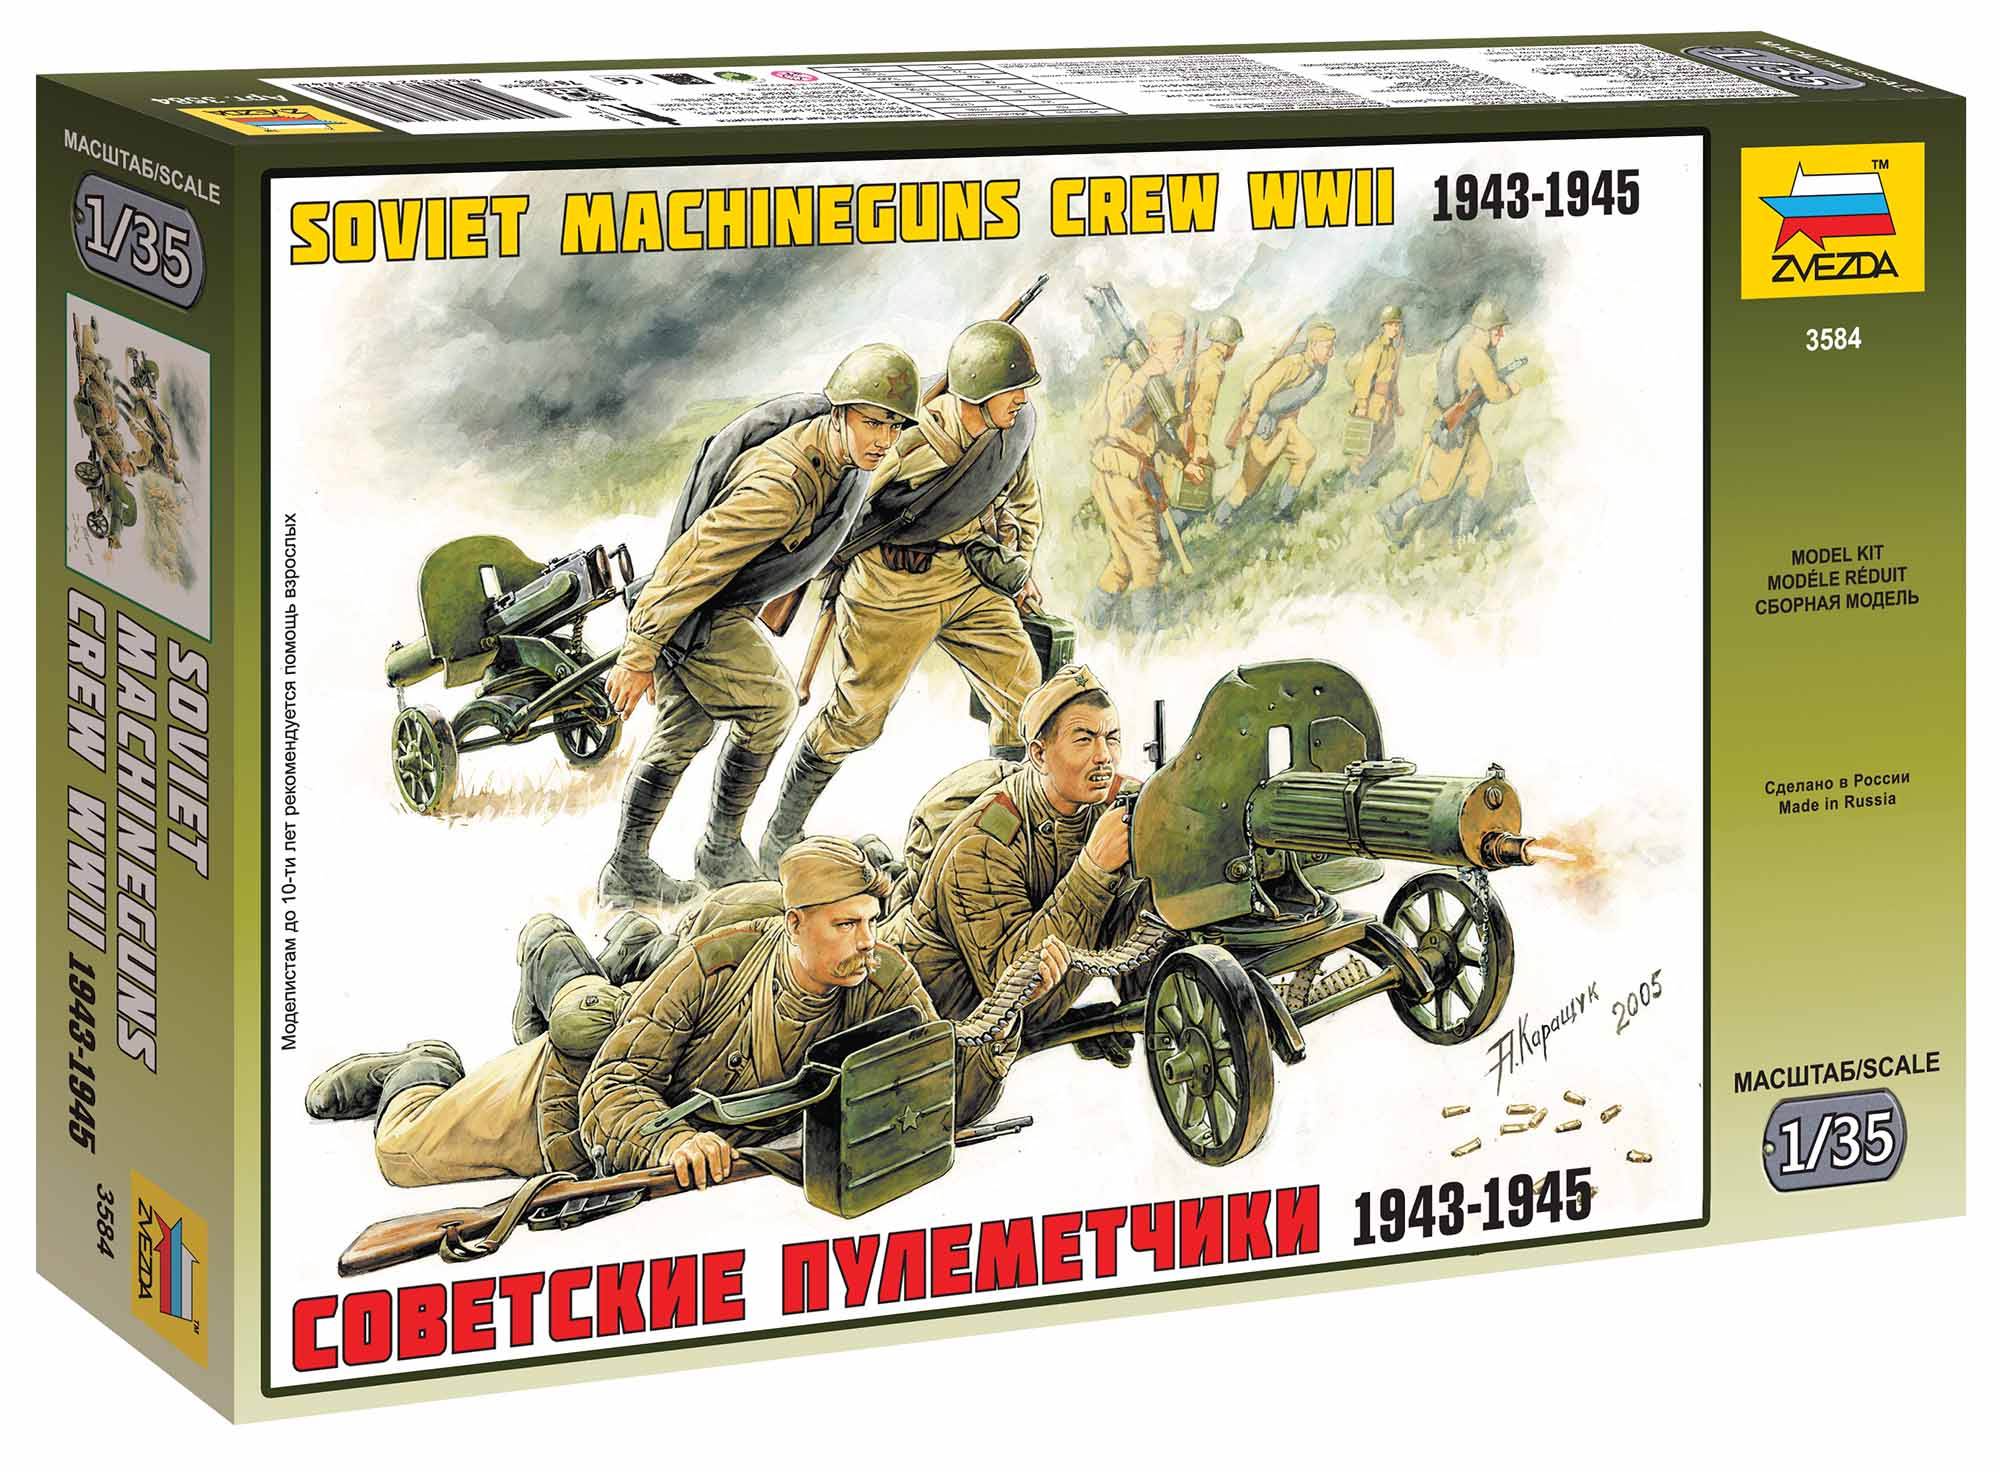 Fotografie Model Kit figurky 3584 - Soviet Machineguns with Crew (1:35)